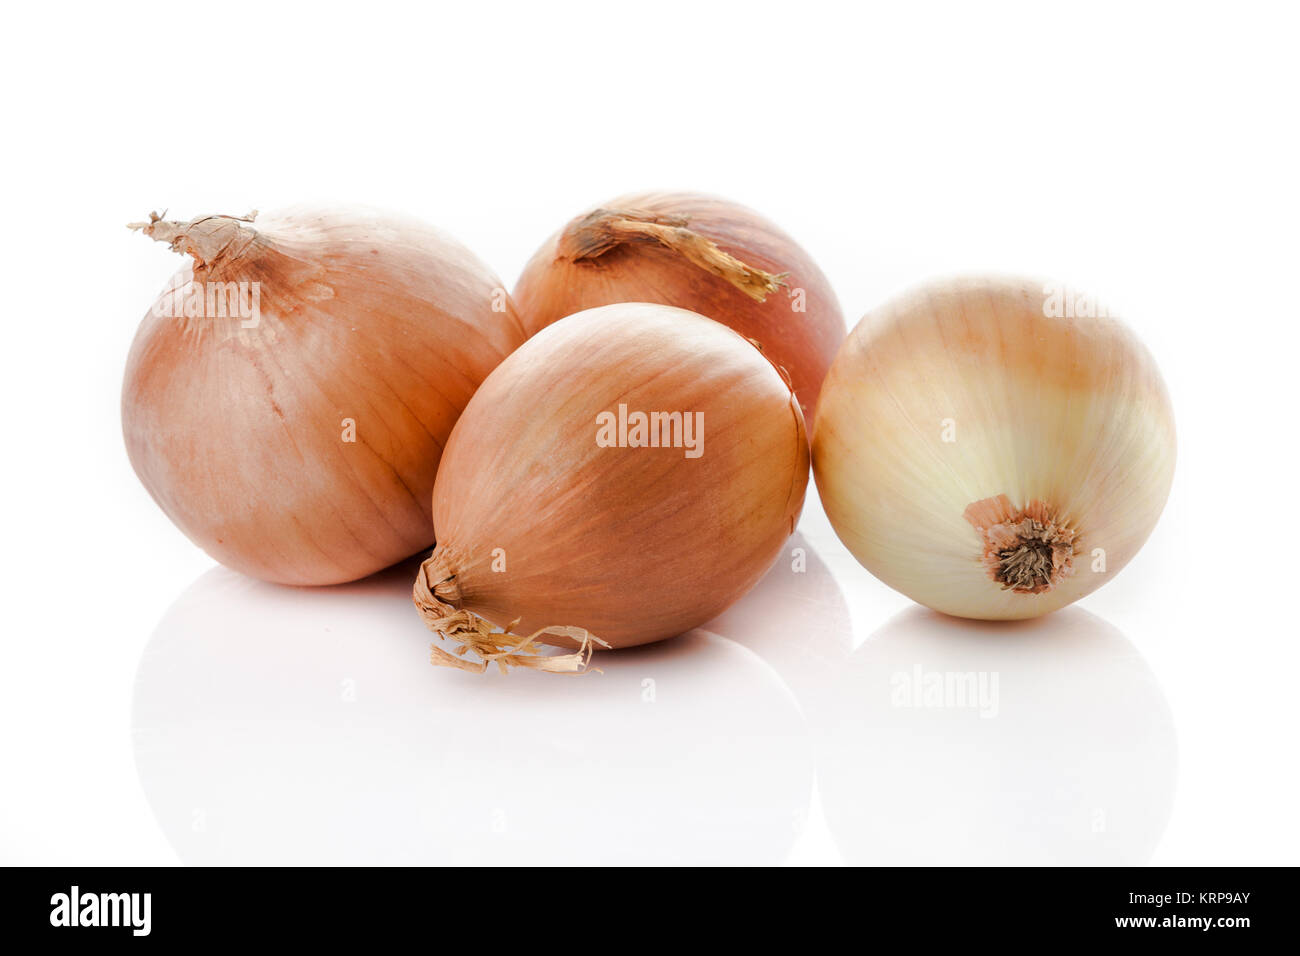 bulb onion production guide Under drought stress, onions are more likely to split or form double and multiple bulbs onions have a high water requirement, usually around 3in of water per week.